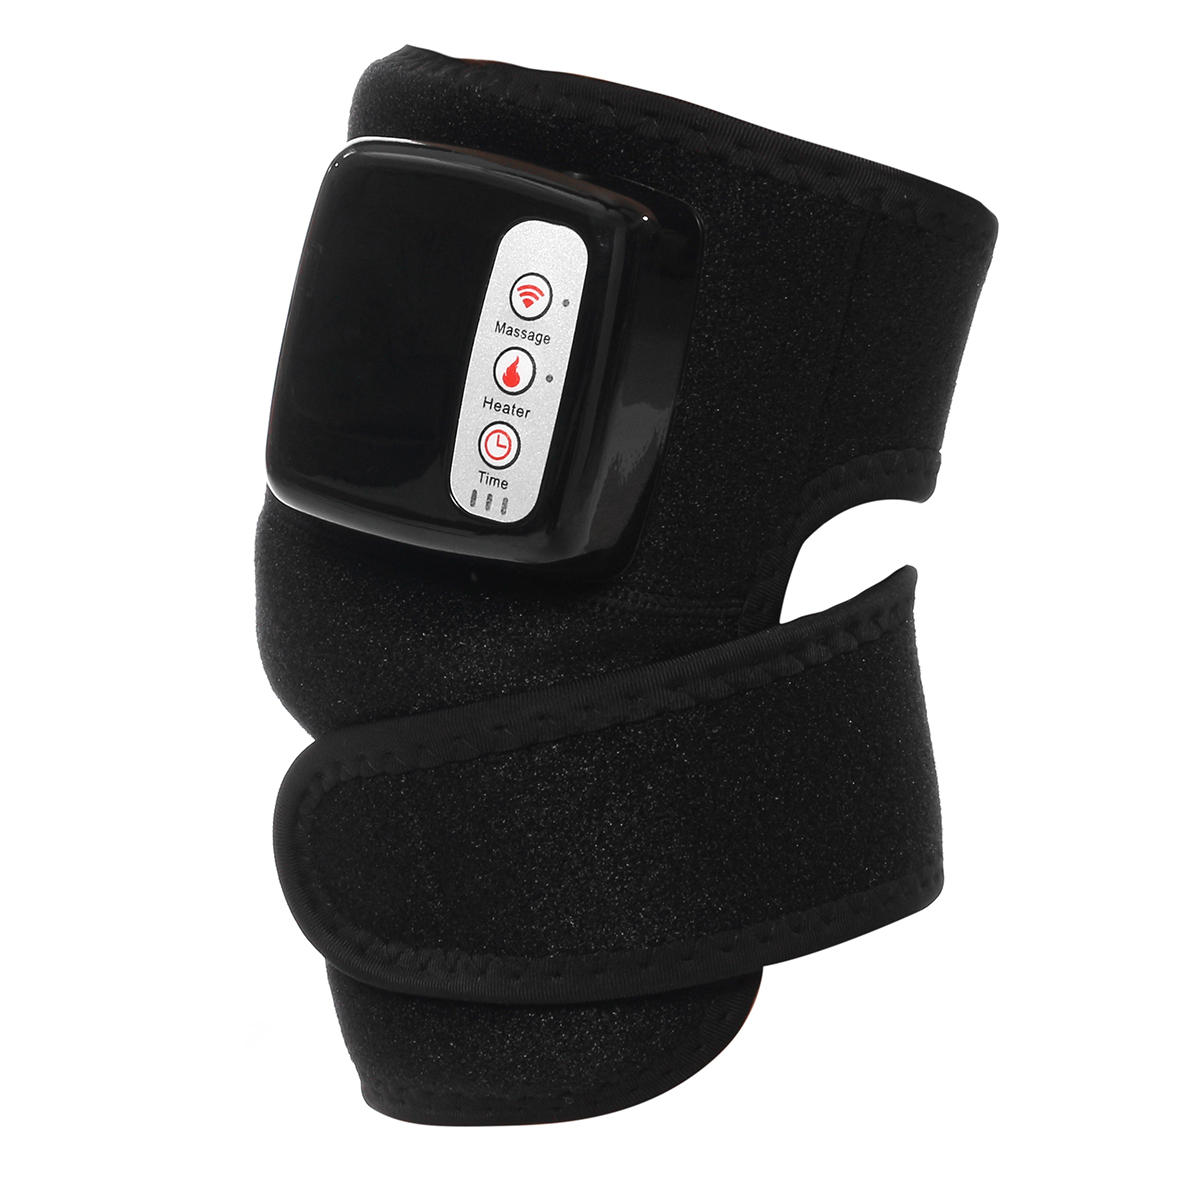 Electric Knee Joint Physiotherapy Massage Arthritis Pain Therapy Device Vibration Heating Massager Brace Care